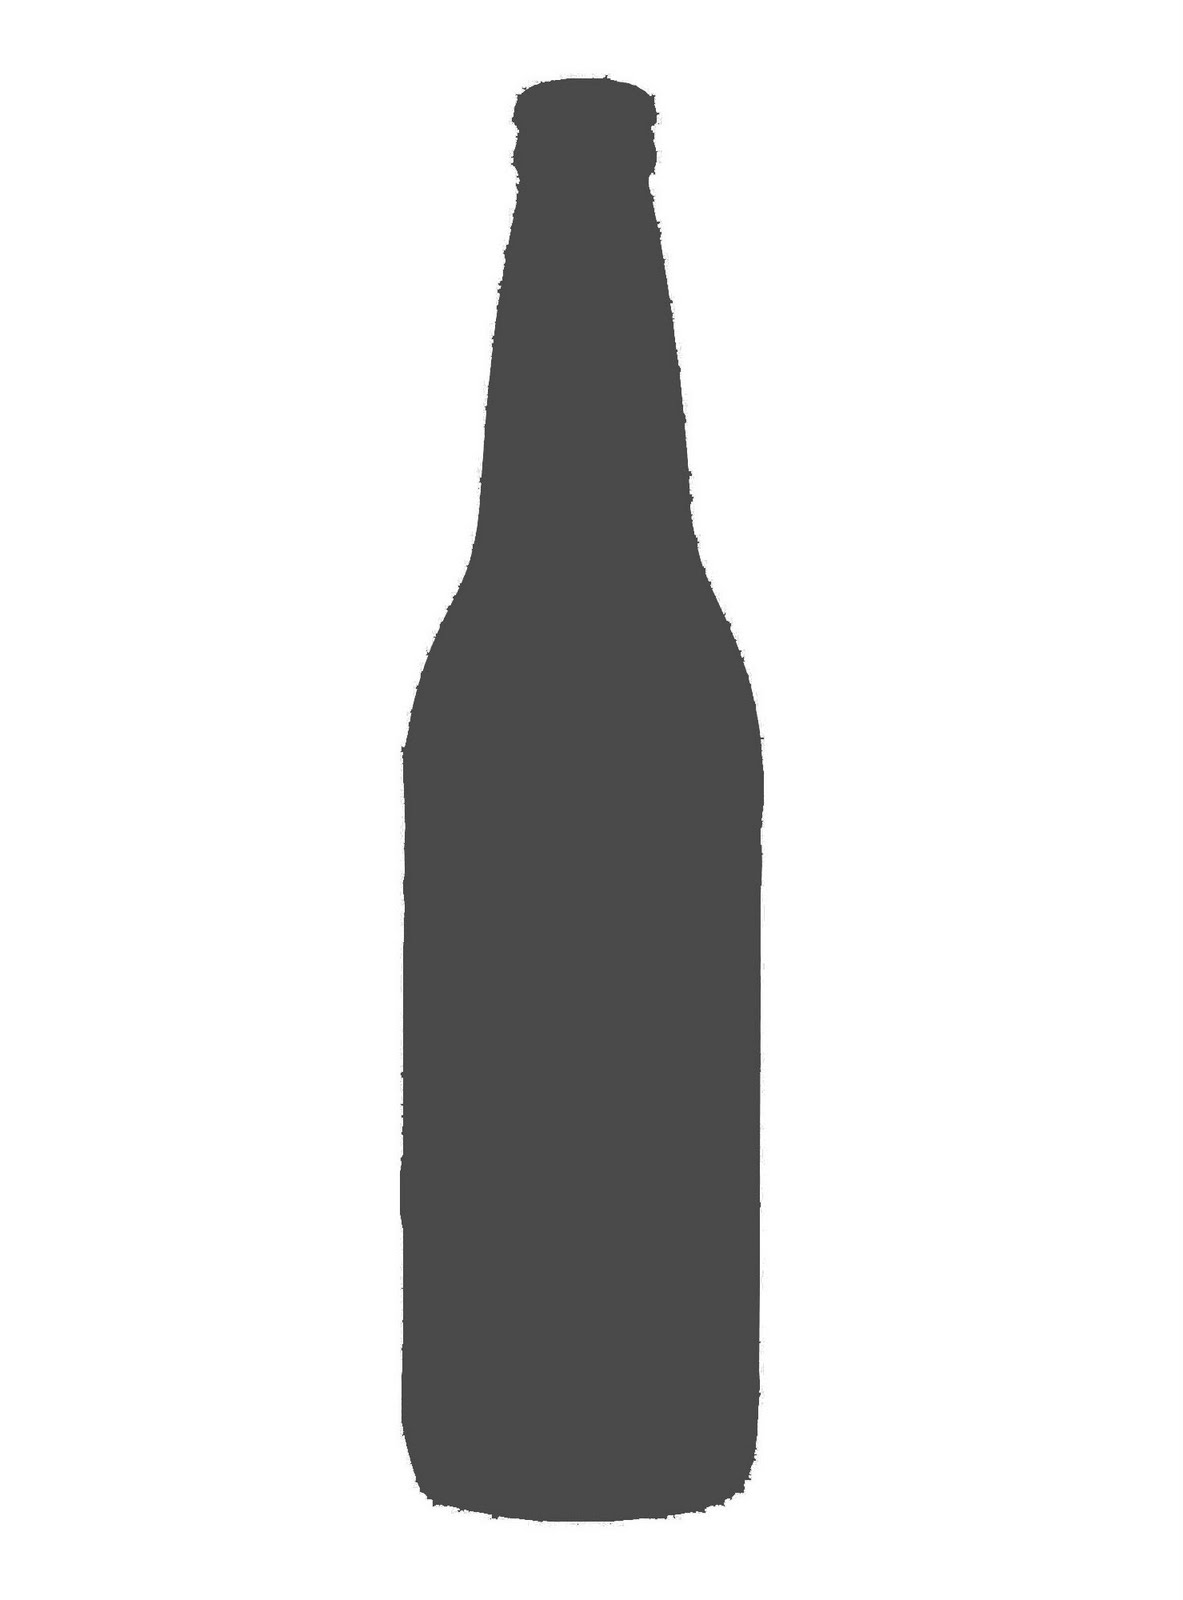 beer bottle silhouette beer bottle silhouette car decal sticker gympie stickers beer silhouette bottle